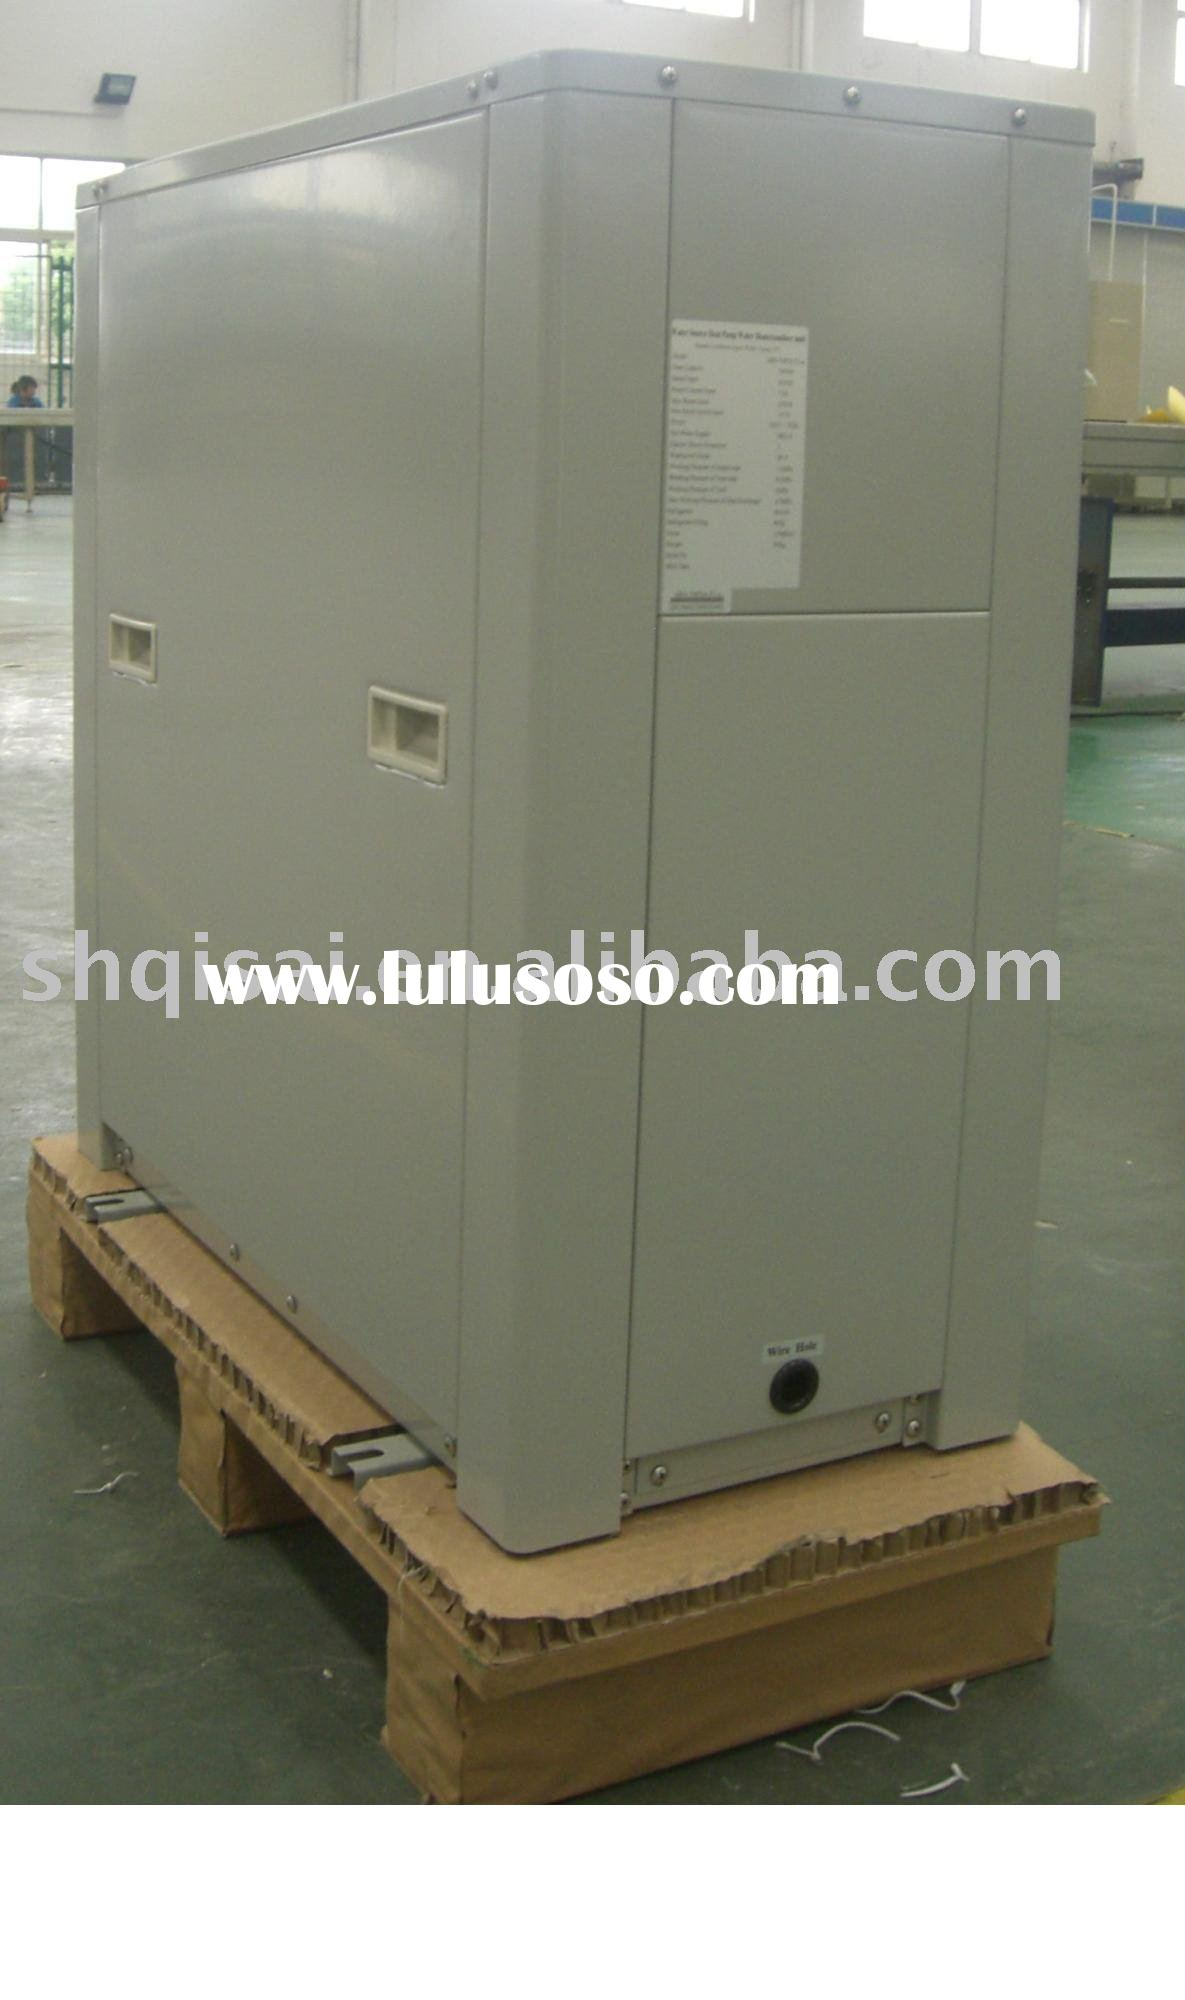 air source heat pump for low tempreture water heater